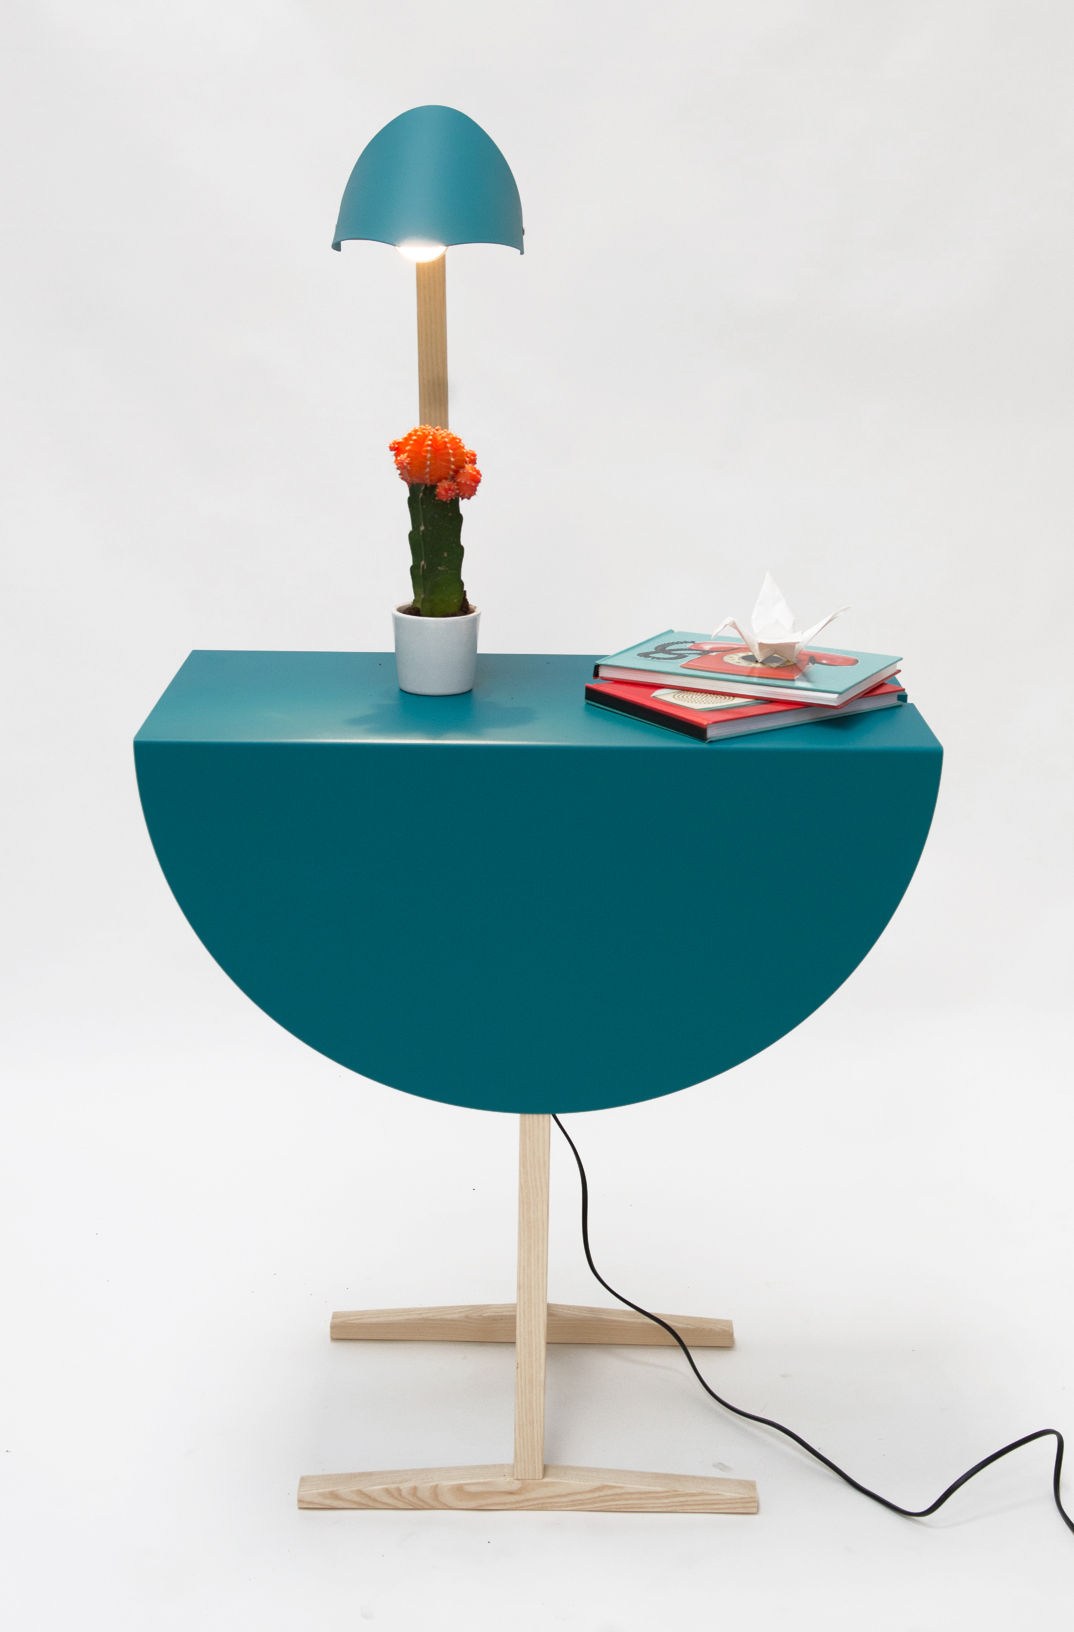 table d 39 appoint ostrich lampe int gr e bleu turquoise fr ne clair valsecchi 1918. Black Bedroom Furniture Sets. Home Design Ideas